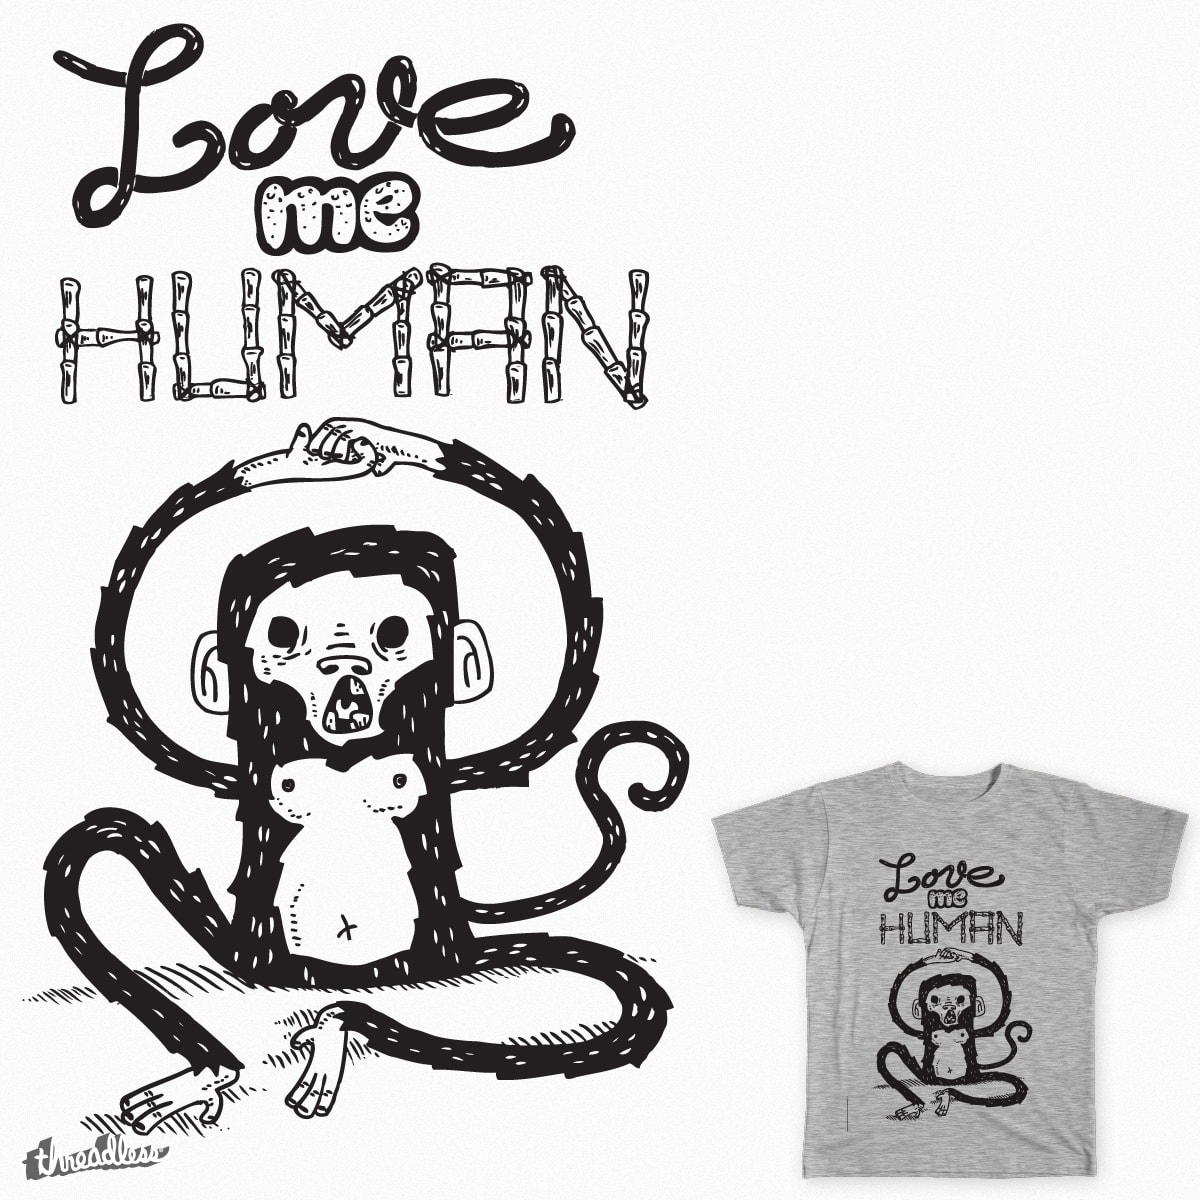 Love me human by Samnuts on Threadless